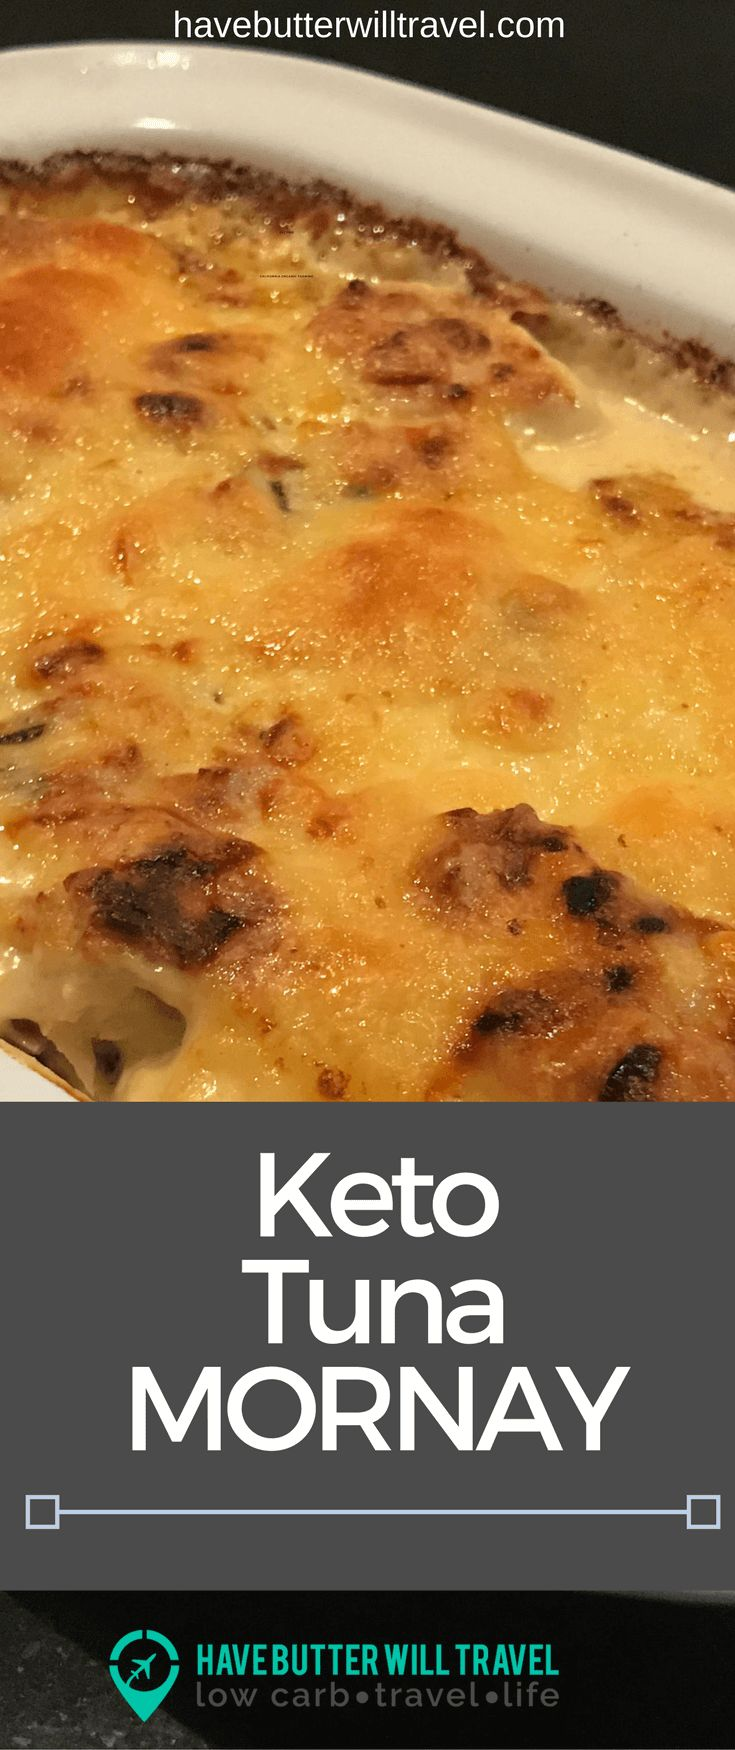 This keto tuna mornay recipe will have you reminiscing the good old days. An excellent option for families, kids will love this.